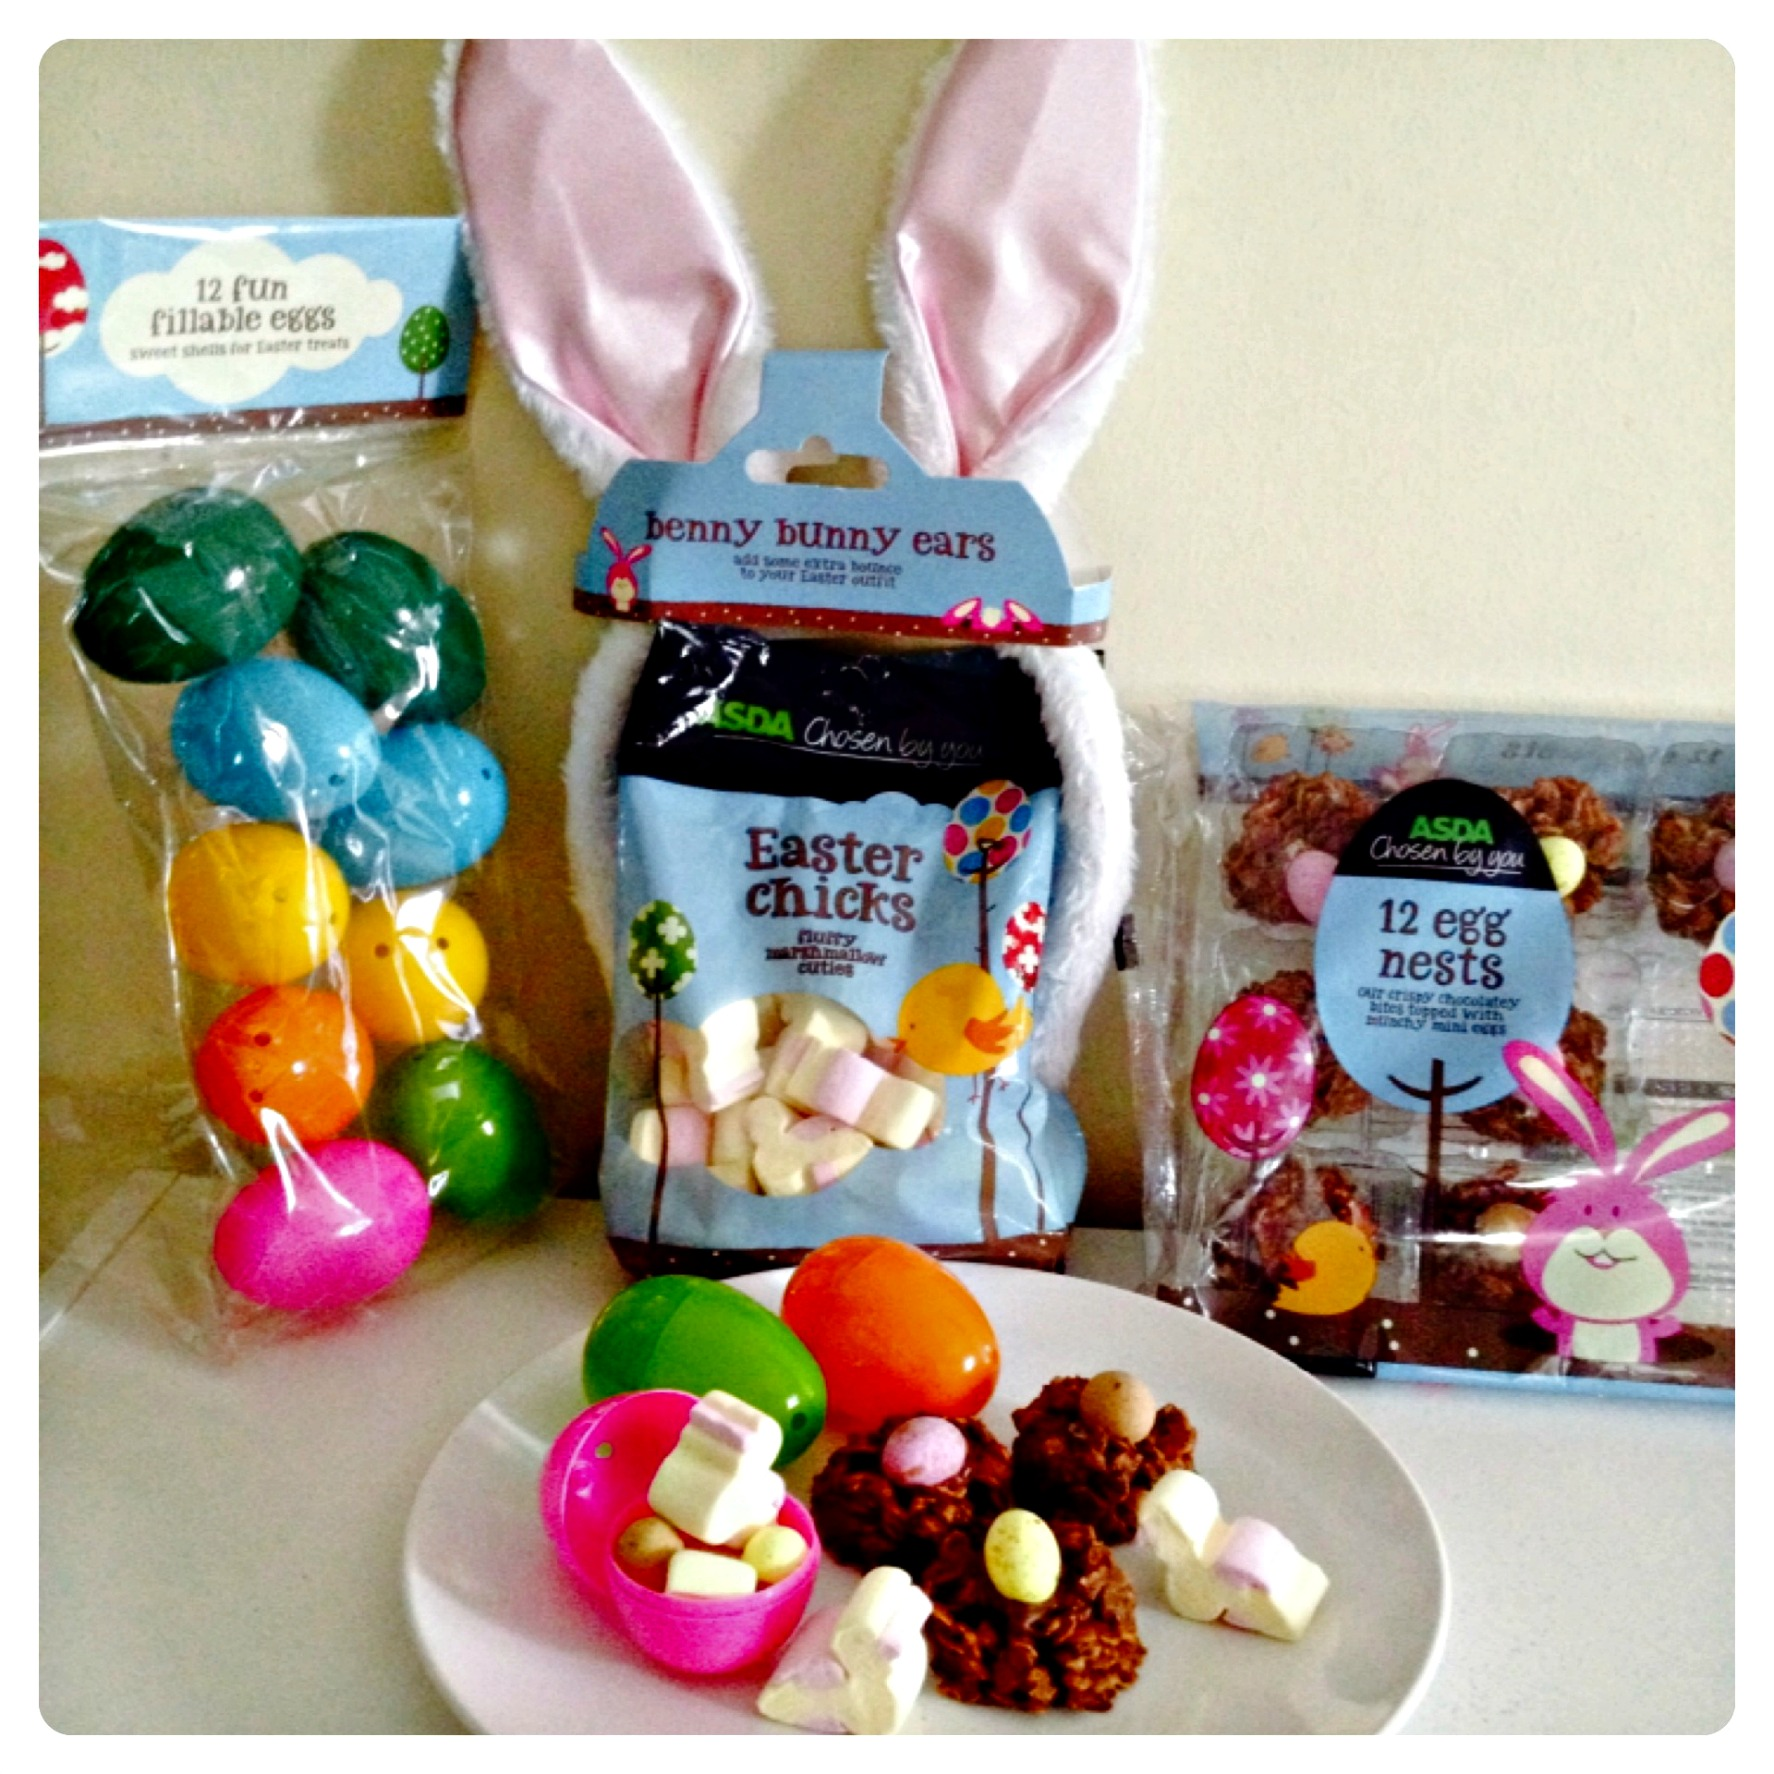 Easter treats and crafts by asda lilinha angels world uk food easter treats and crafts by asda lilinha angels world uk food lifestyle blog negle Image collections